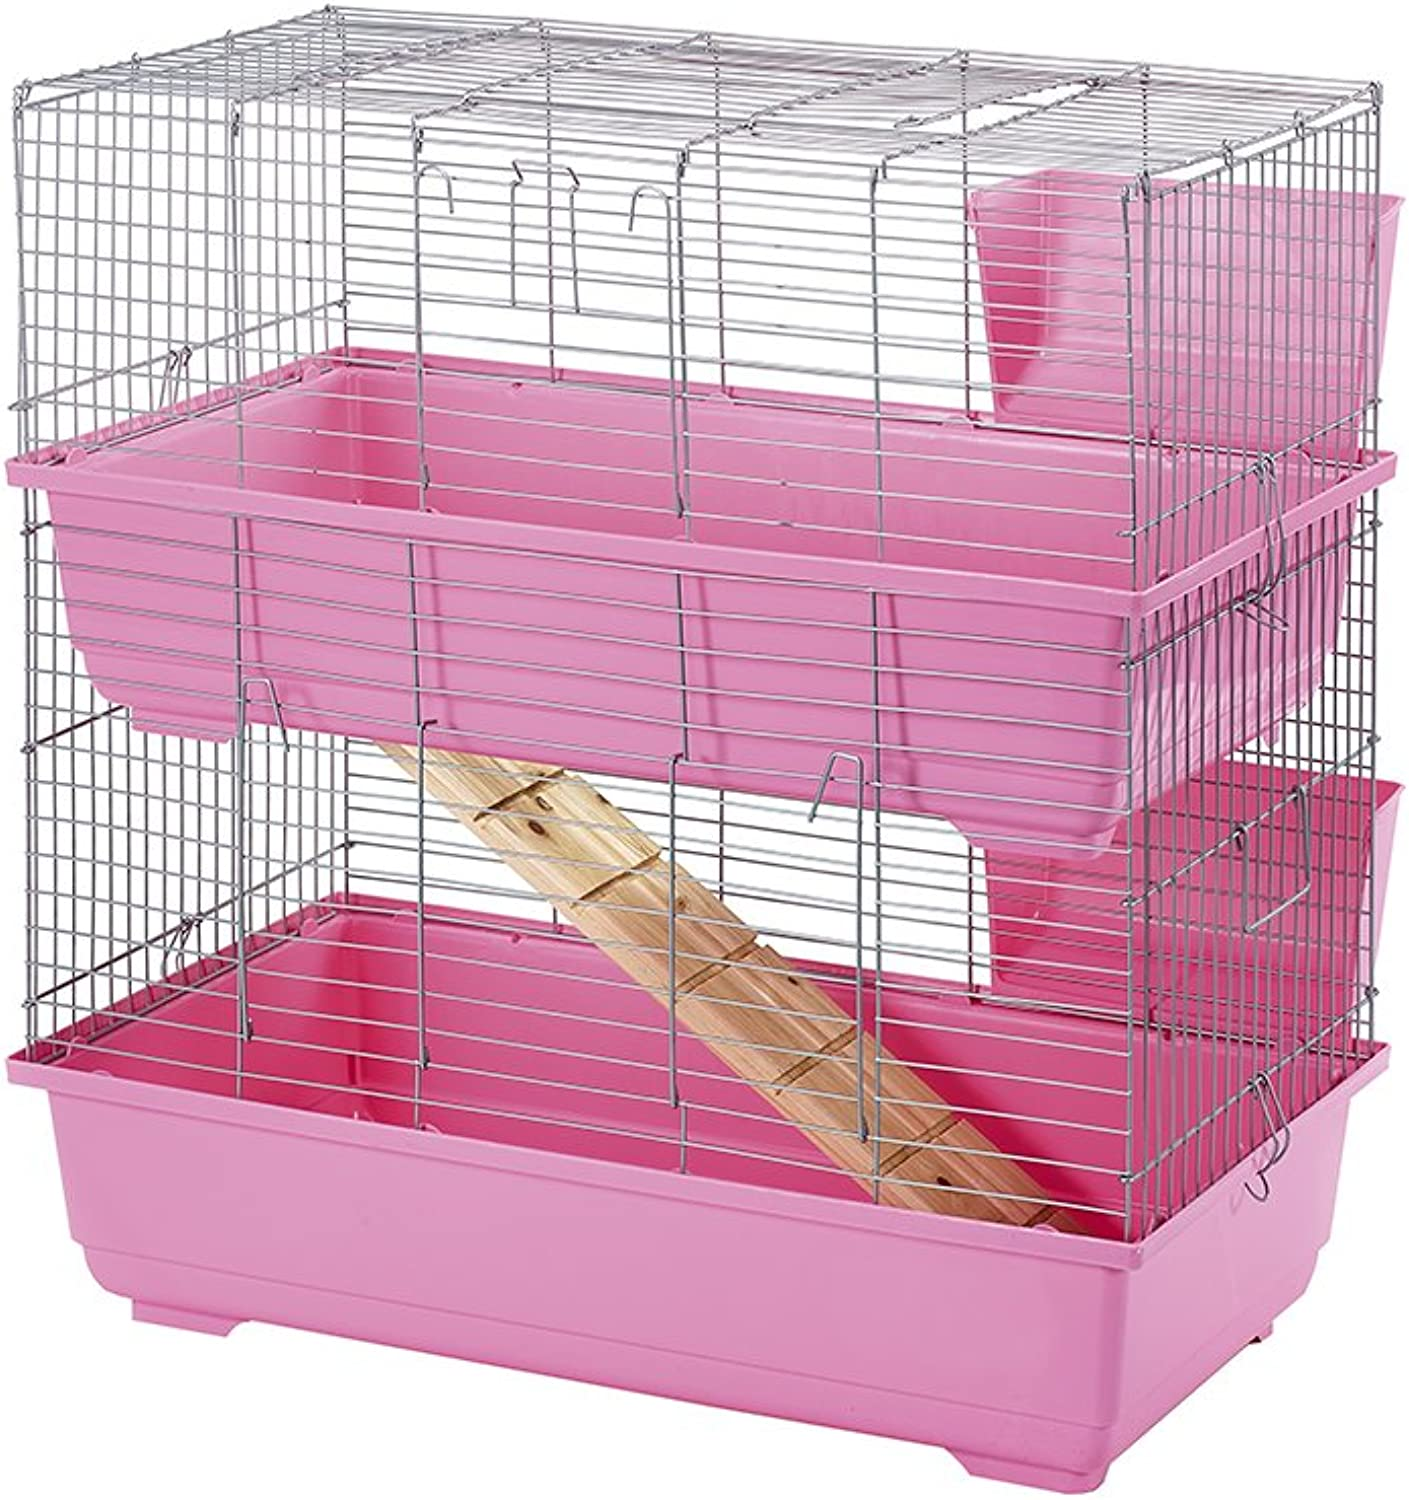 Little Friends Double Tier Rabbit Cage, 80 cm, Pink